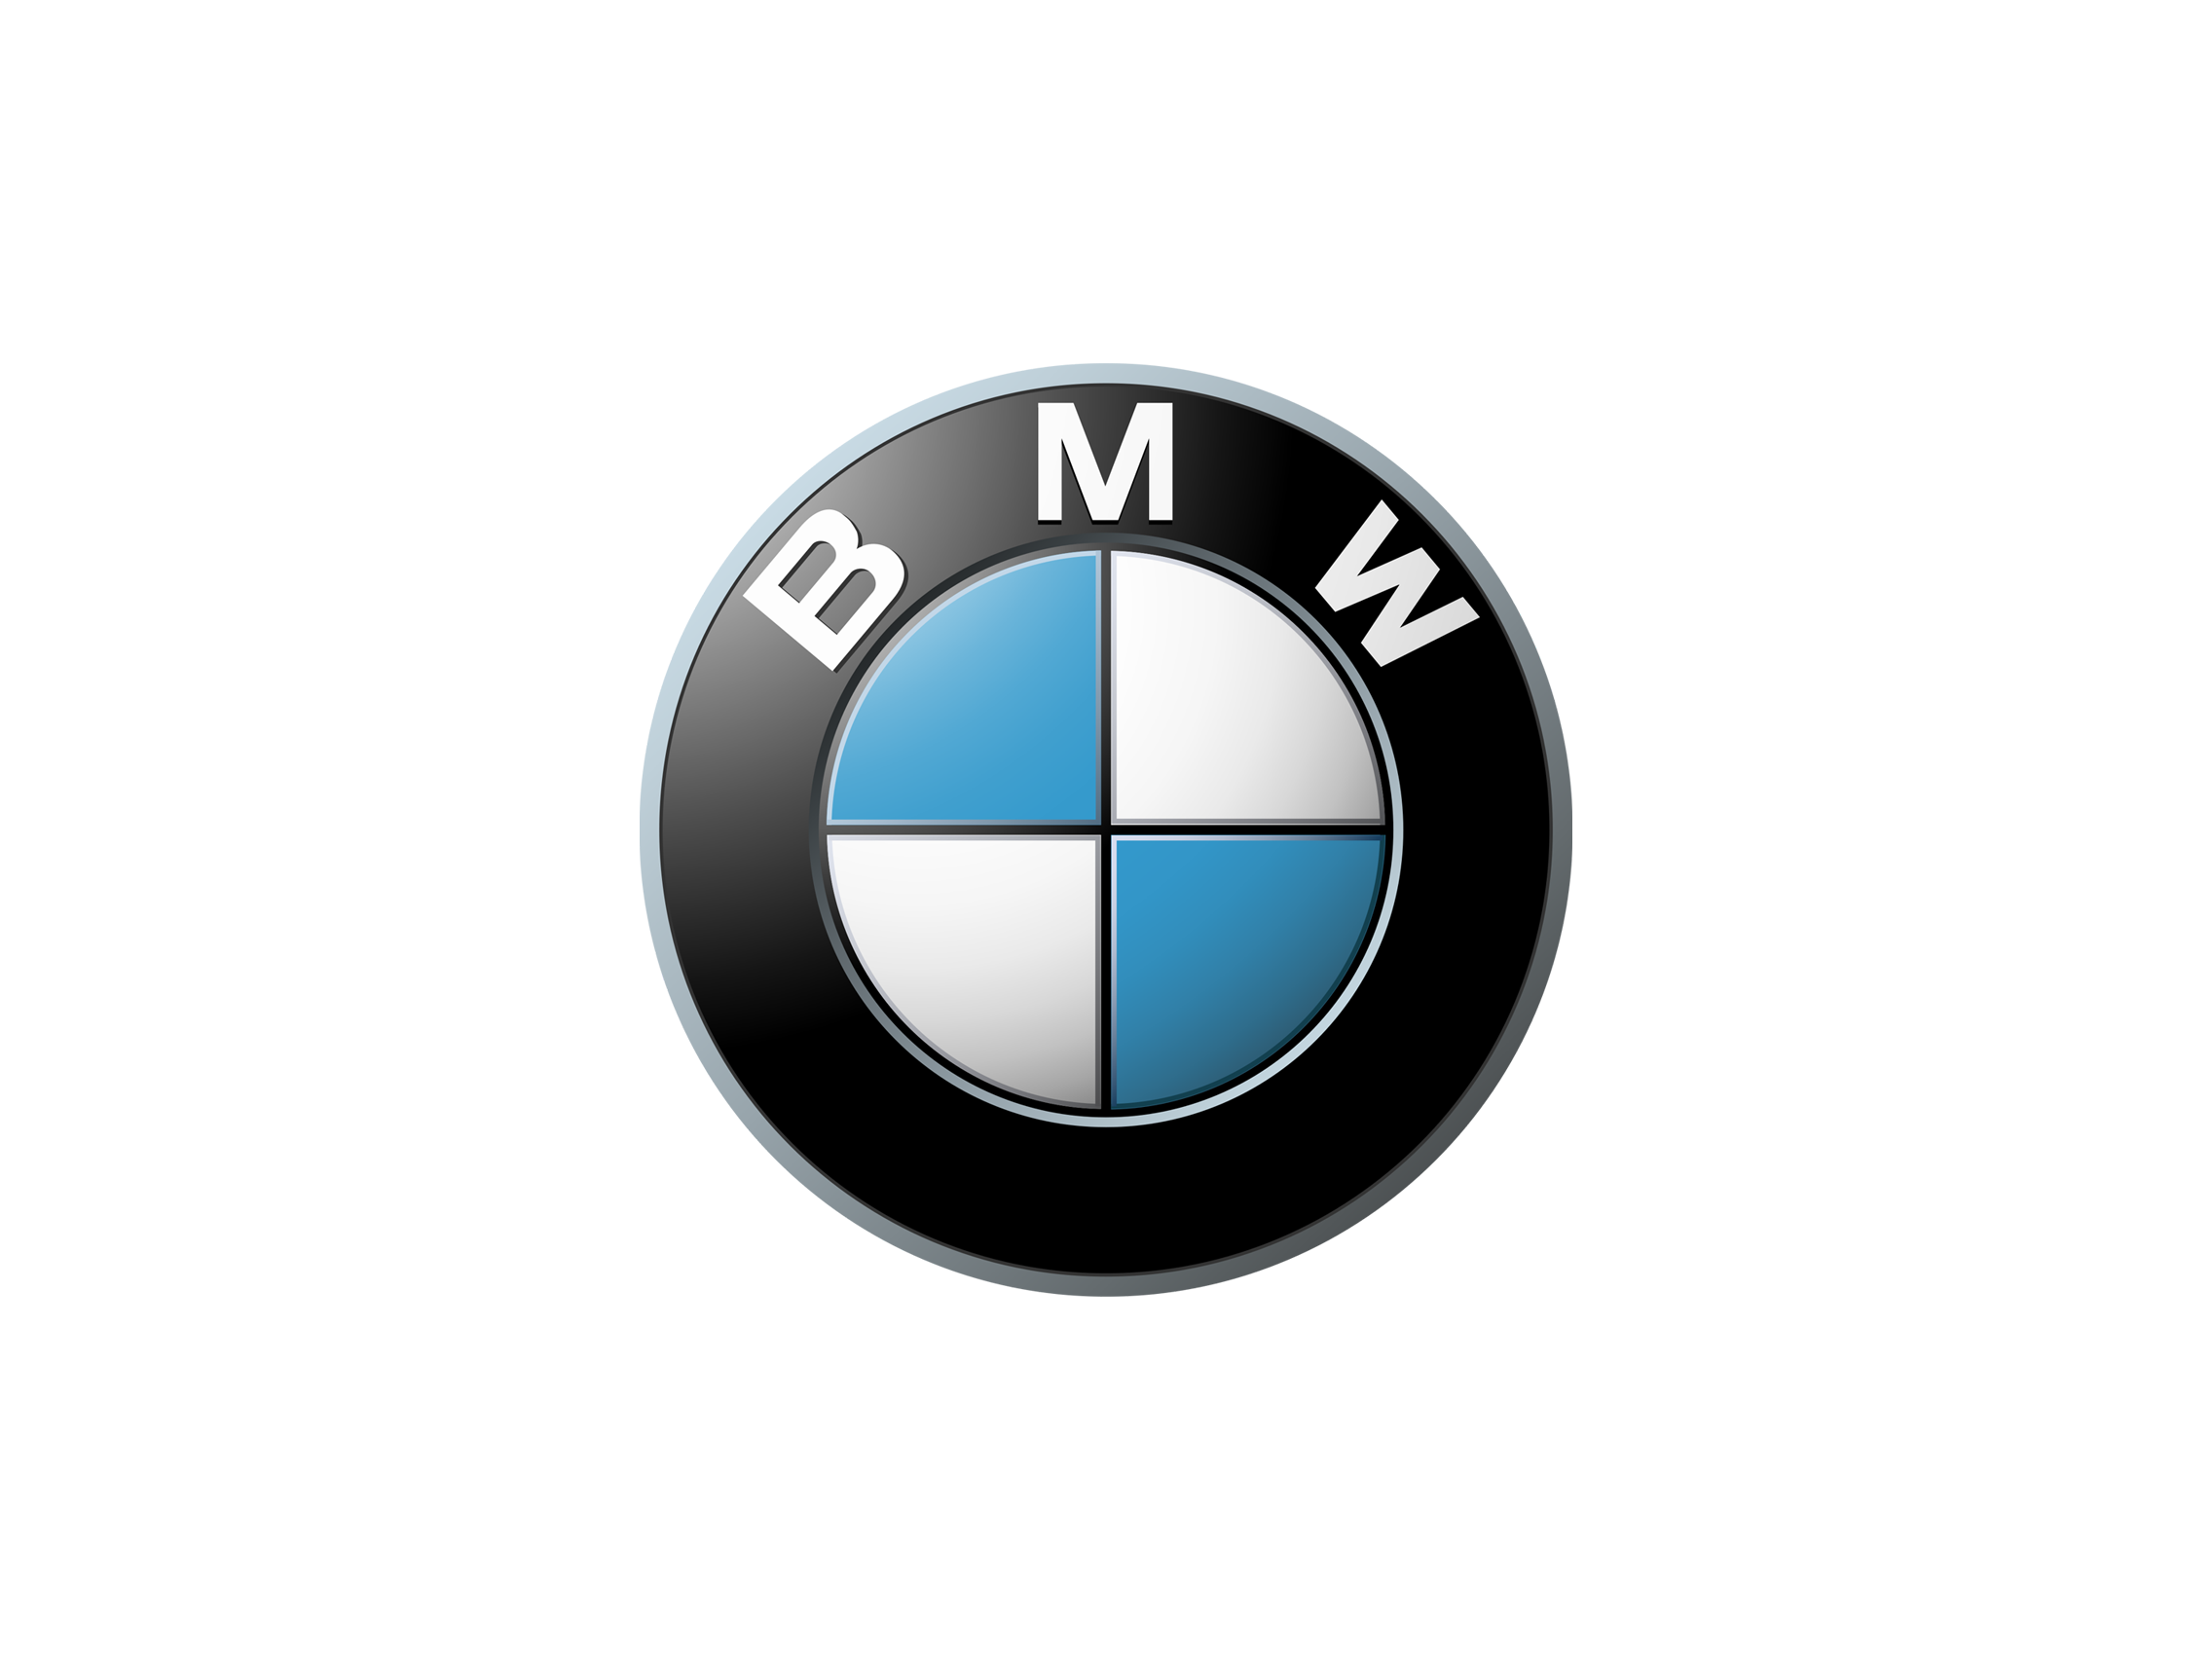 Bmw Logo Png Hd Resolution Iblogpix 588975 On Wookmark